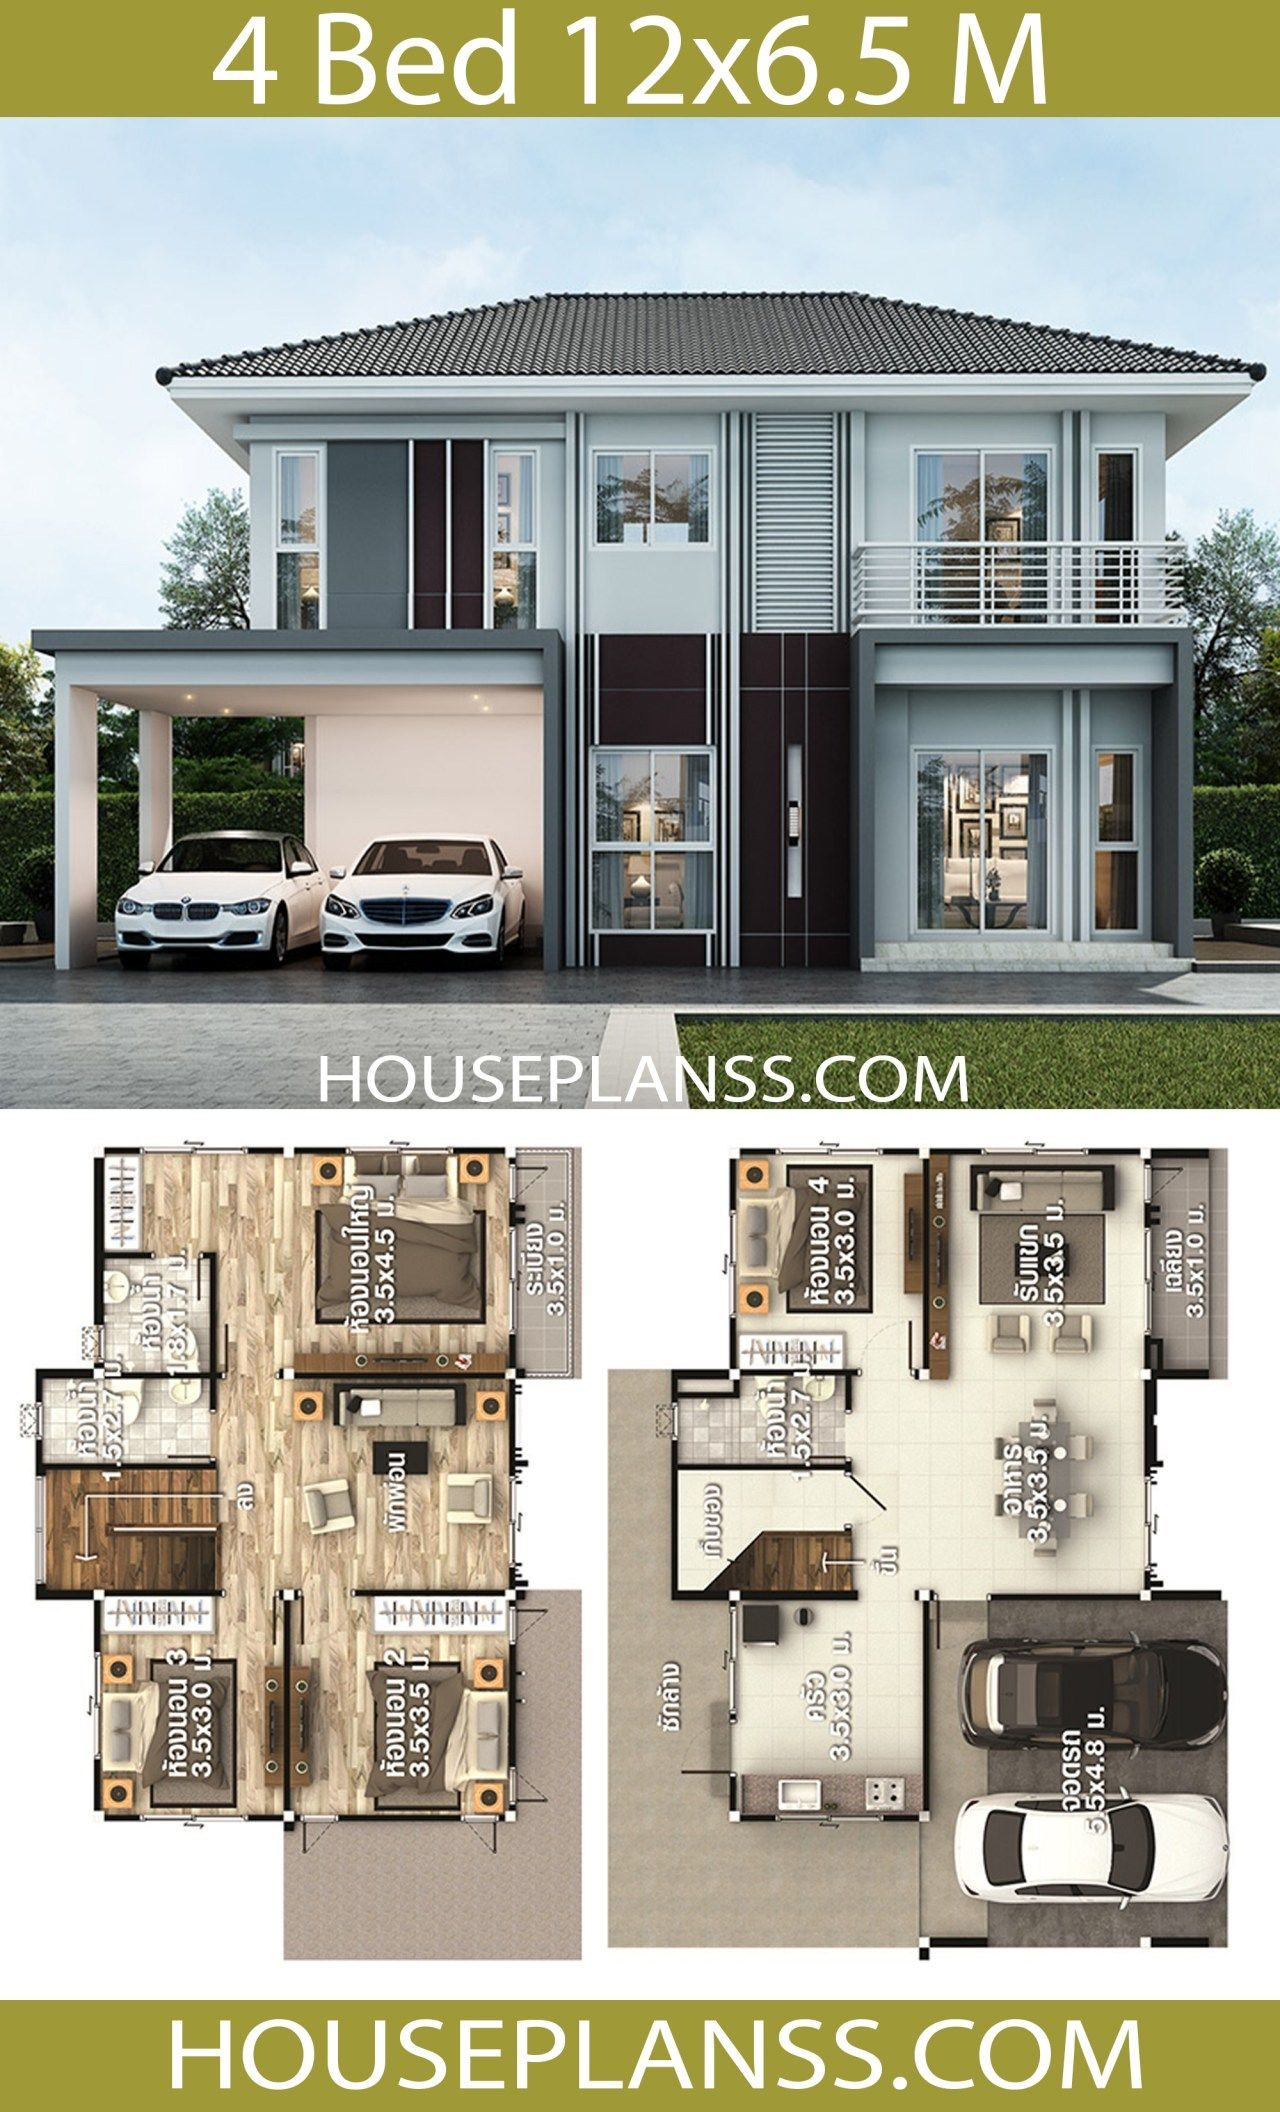 House Plans Idea 12x6 5 With 4 Bedrooms House Plans S New Model House Beautiful House Plans Model House Plan